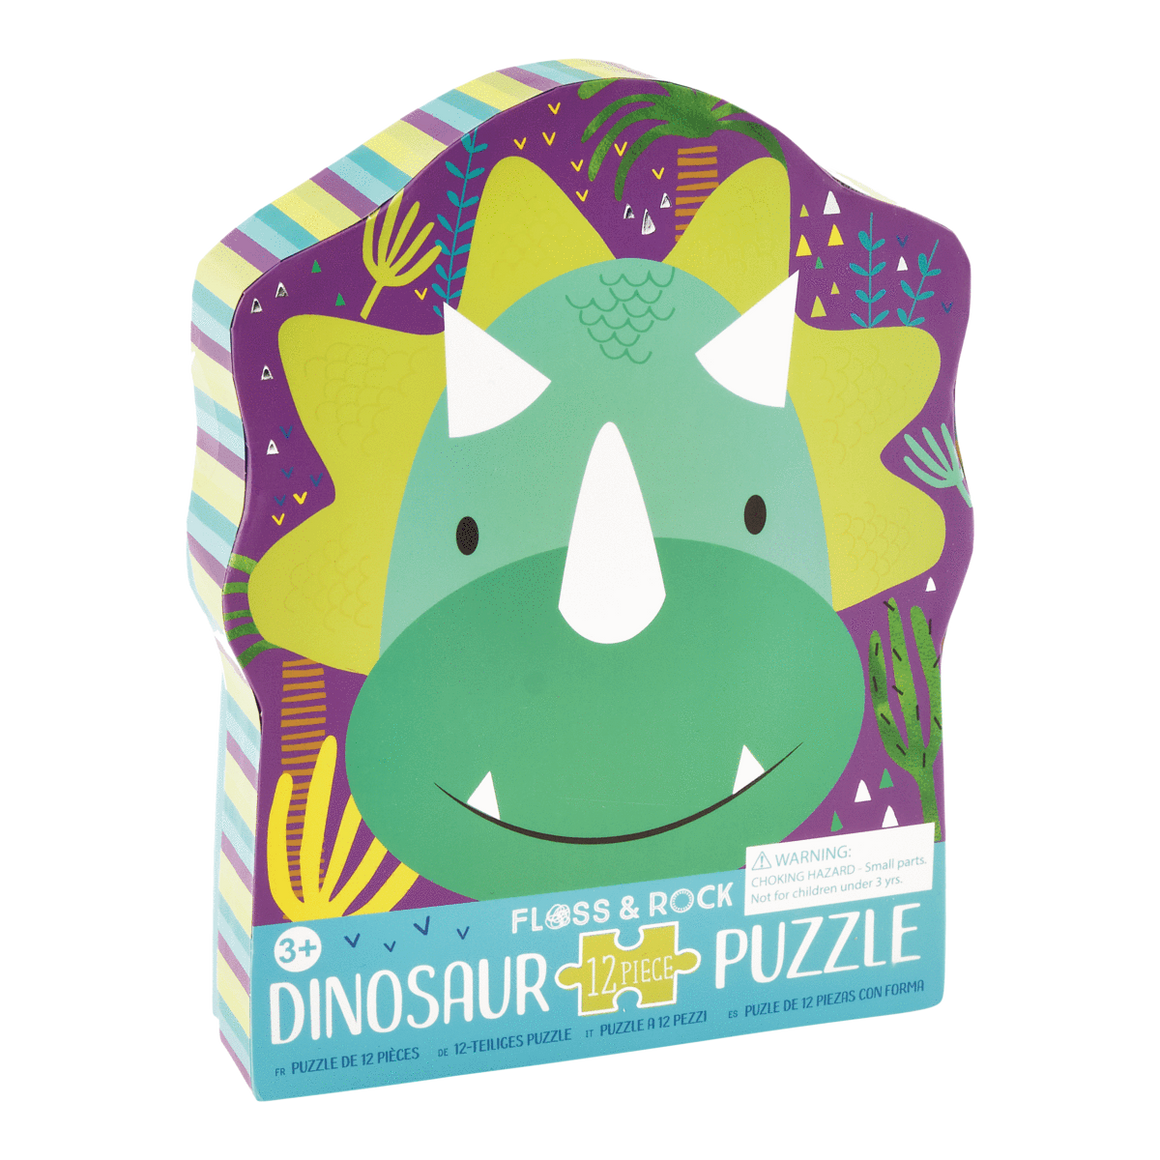 Floss & Rock | 12 Piece Jigsaw Puzzle | Dino